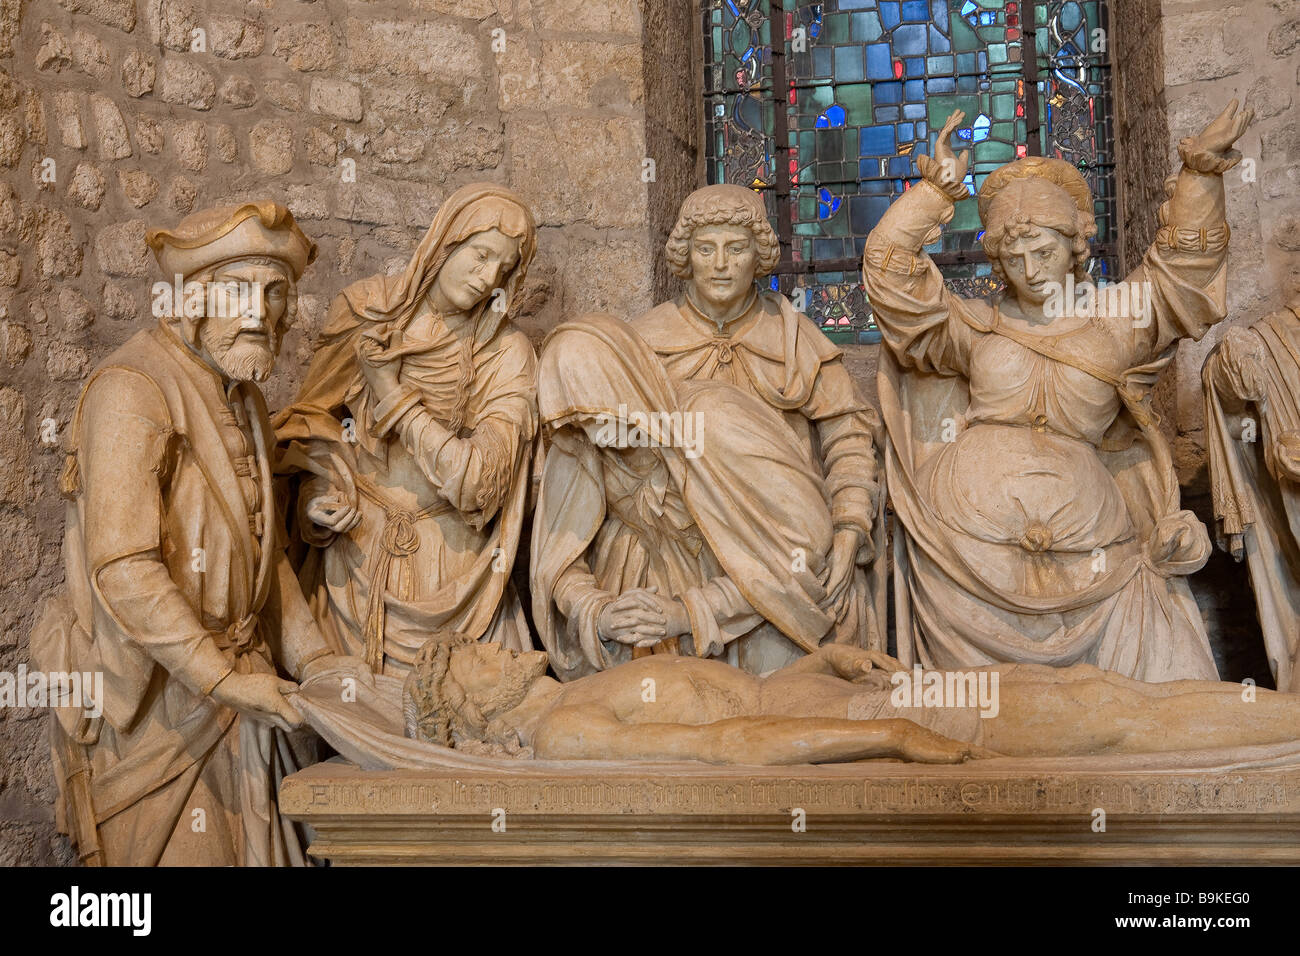 France, Marne, Reims, Saint Remy Basilica, entombment - Stock Image